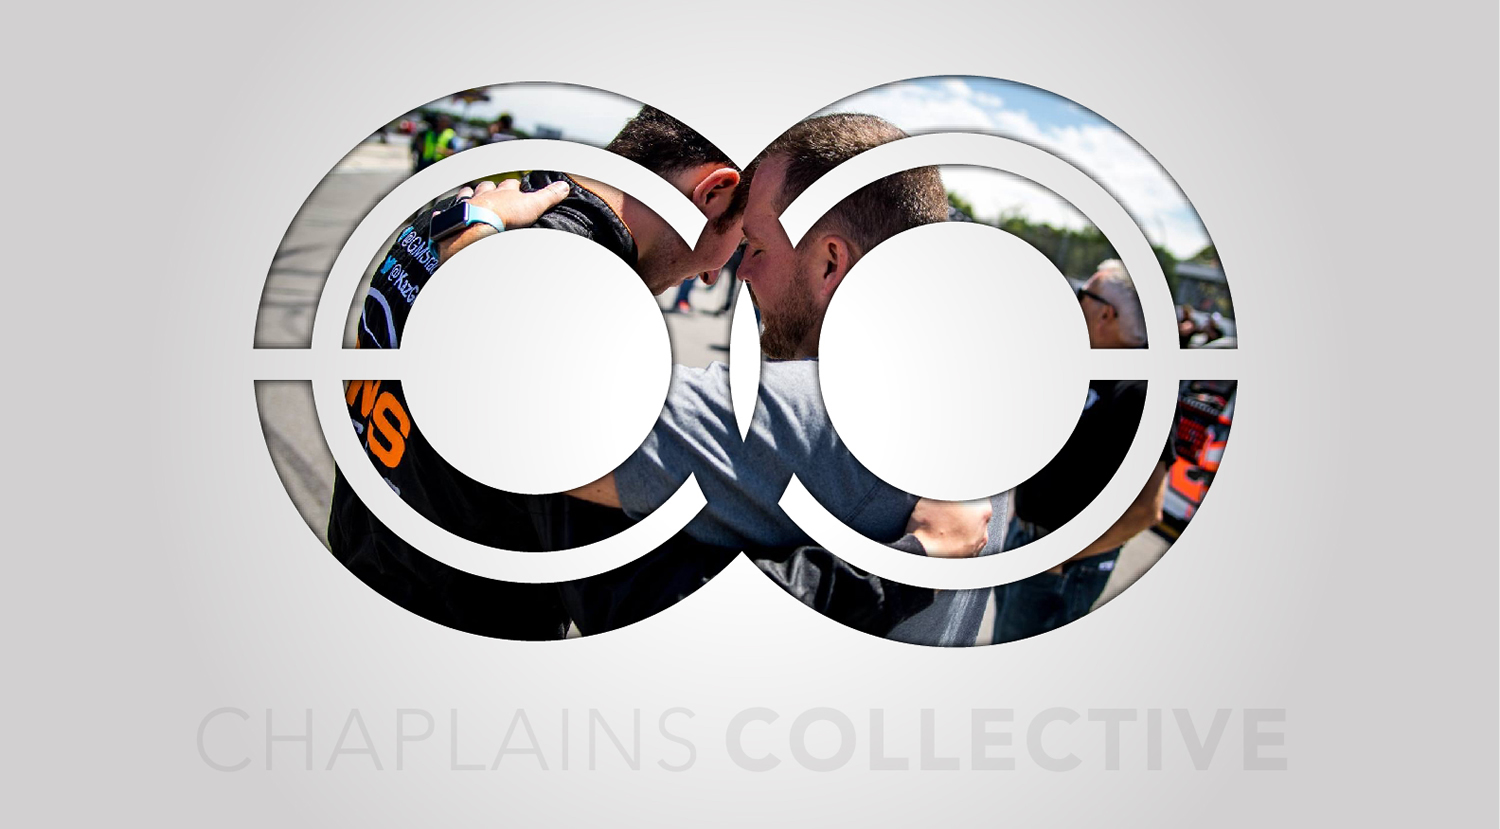 Why Chaplains Collective?